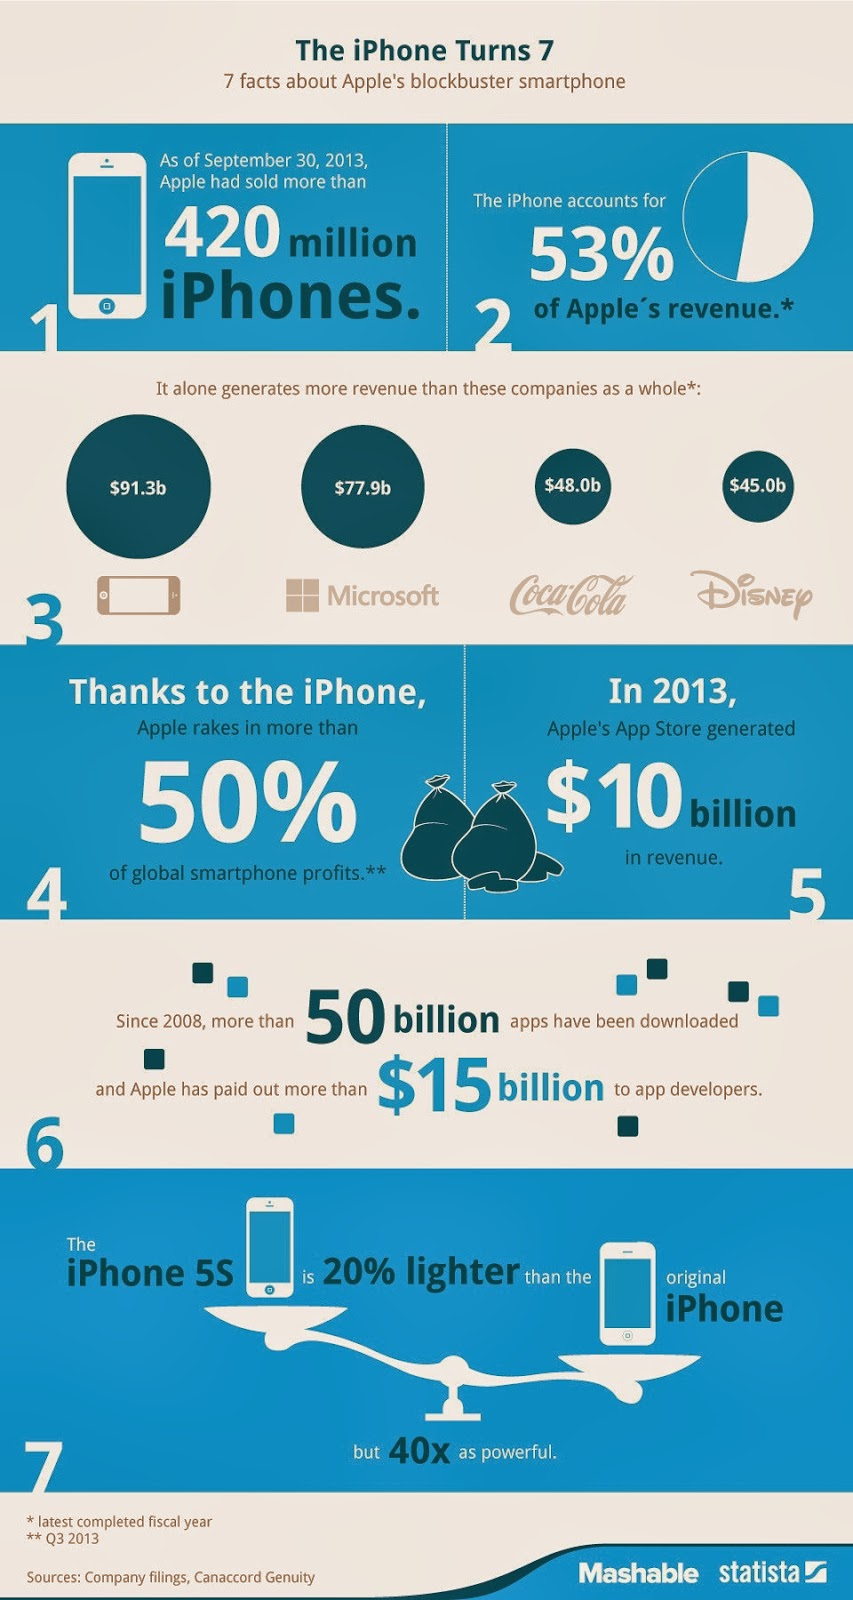 7 Facts About The iPhone